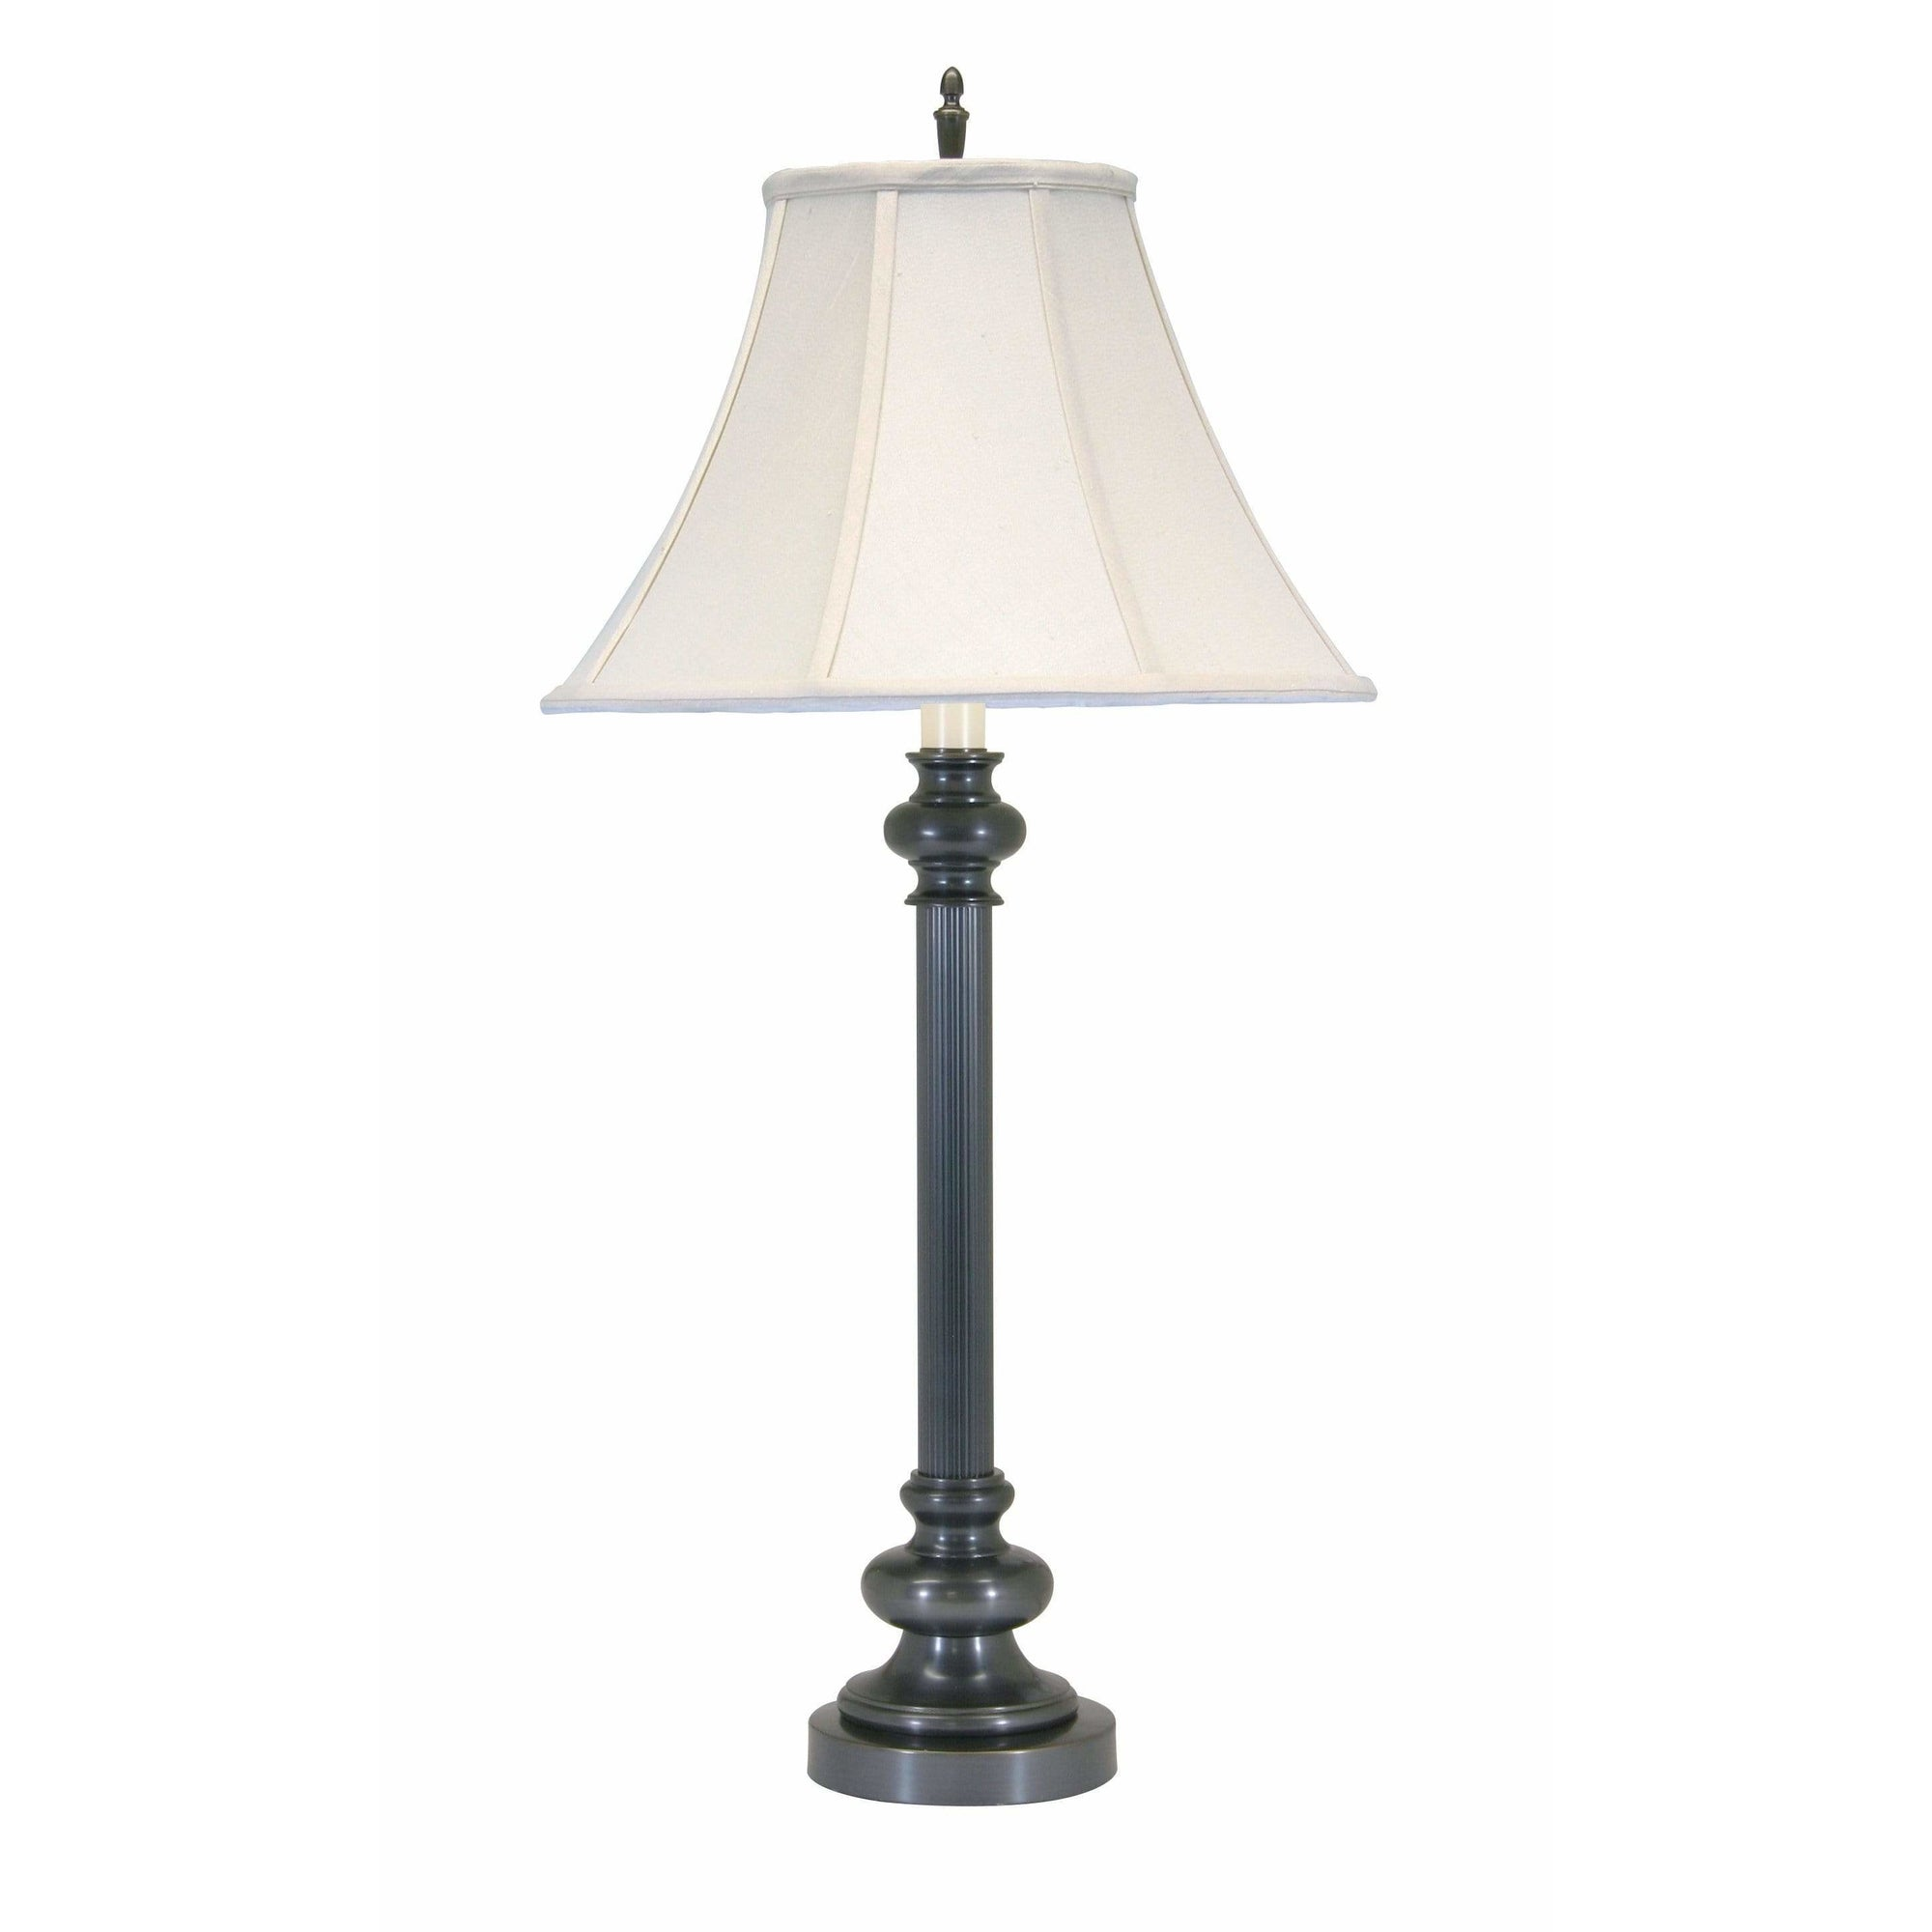 House Of Troy Table Lamps Newport Table Lamp by House Of Troy N652-OB